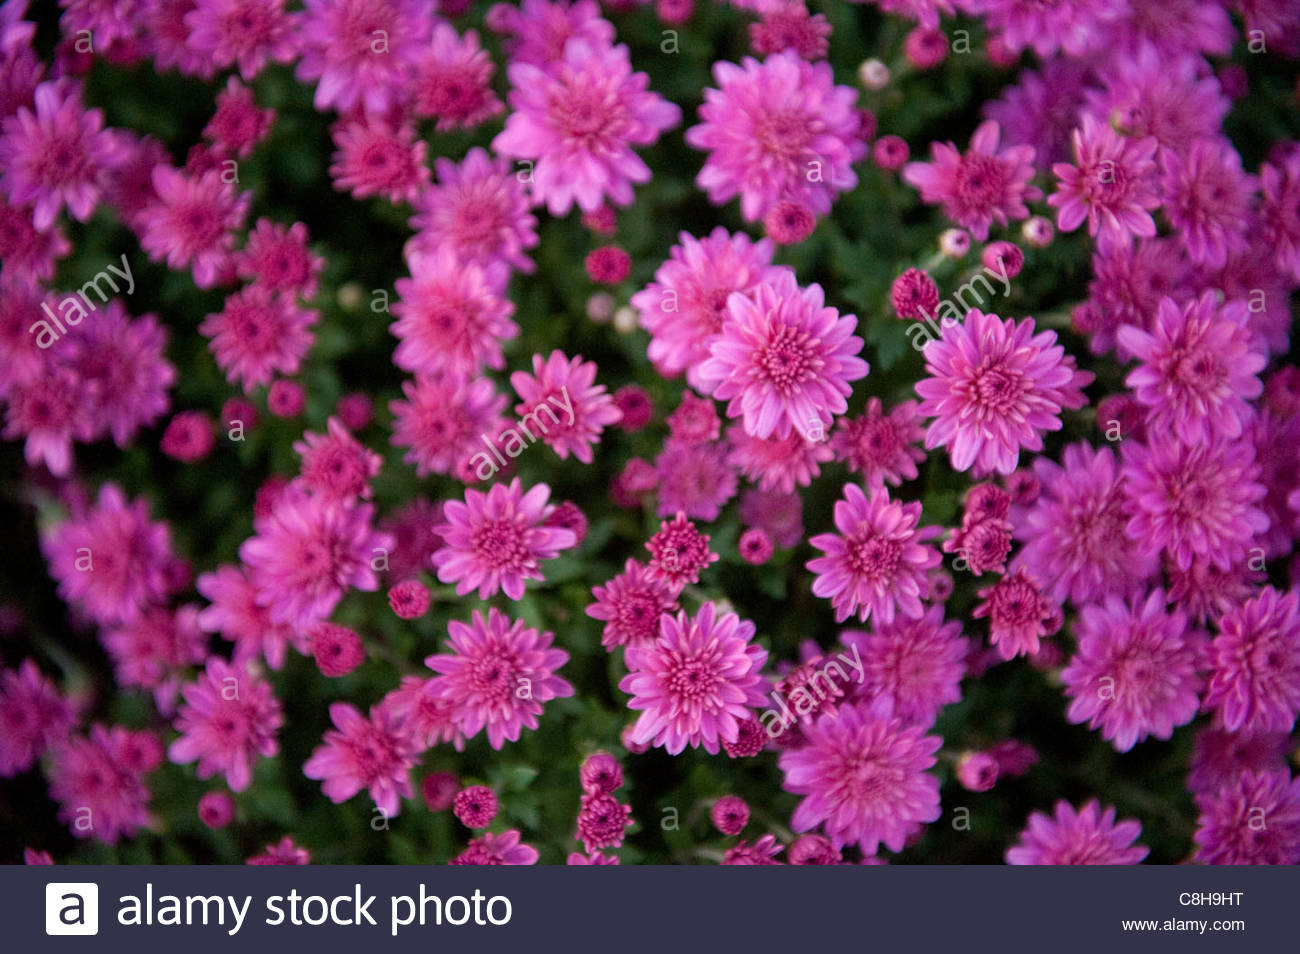 A grouping of pink mums. - Stock Image